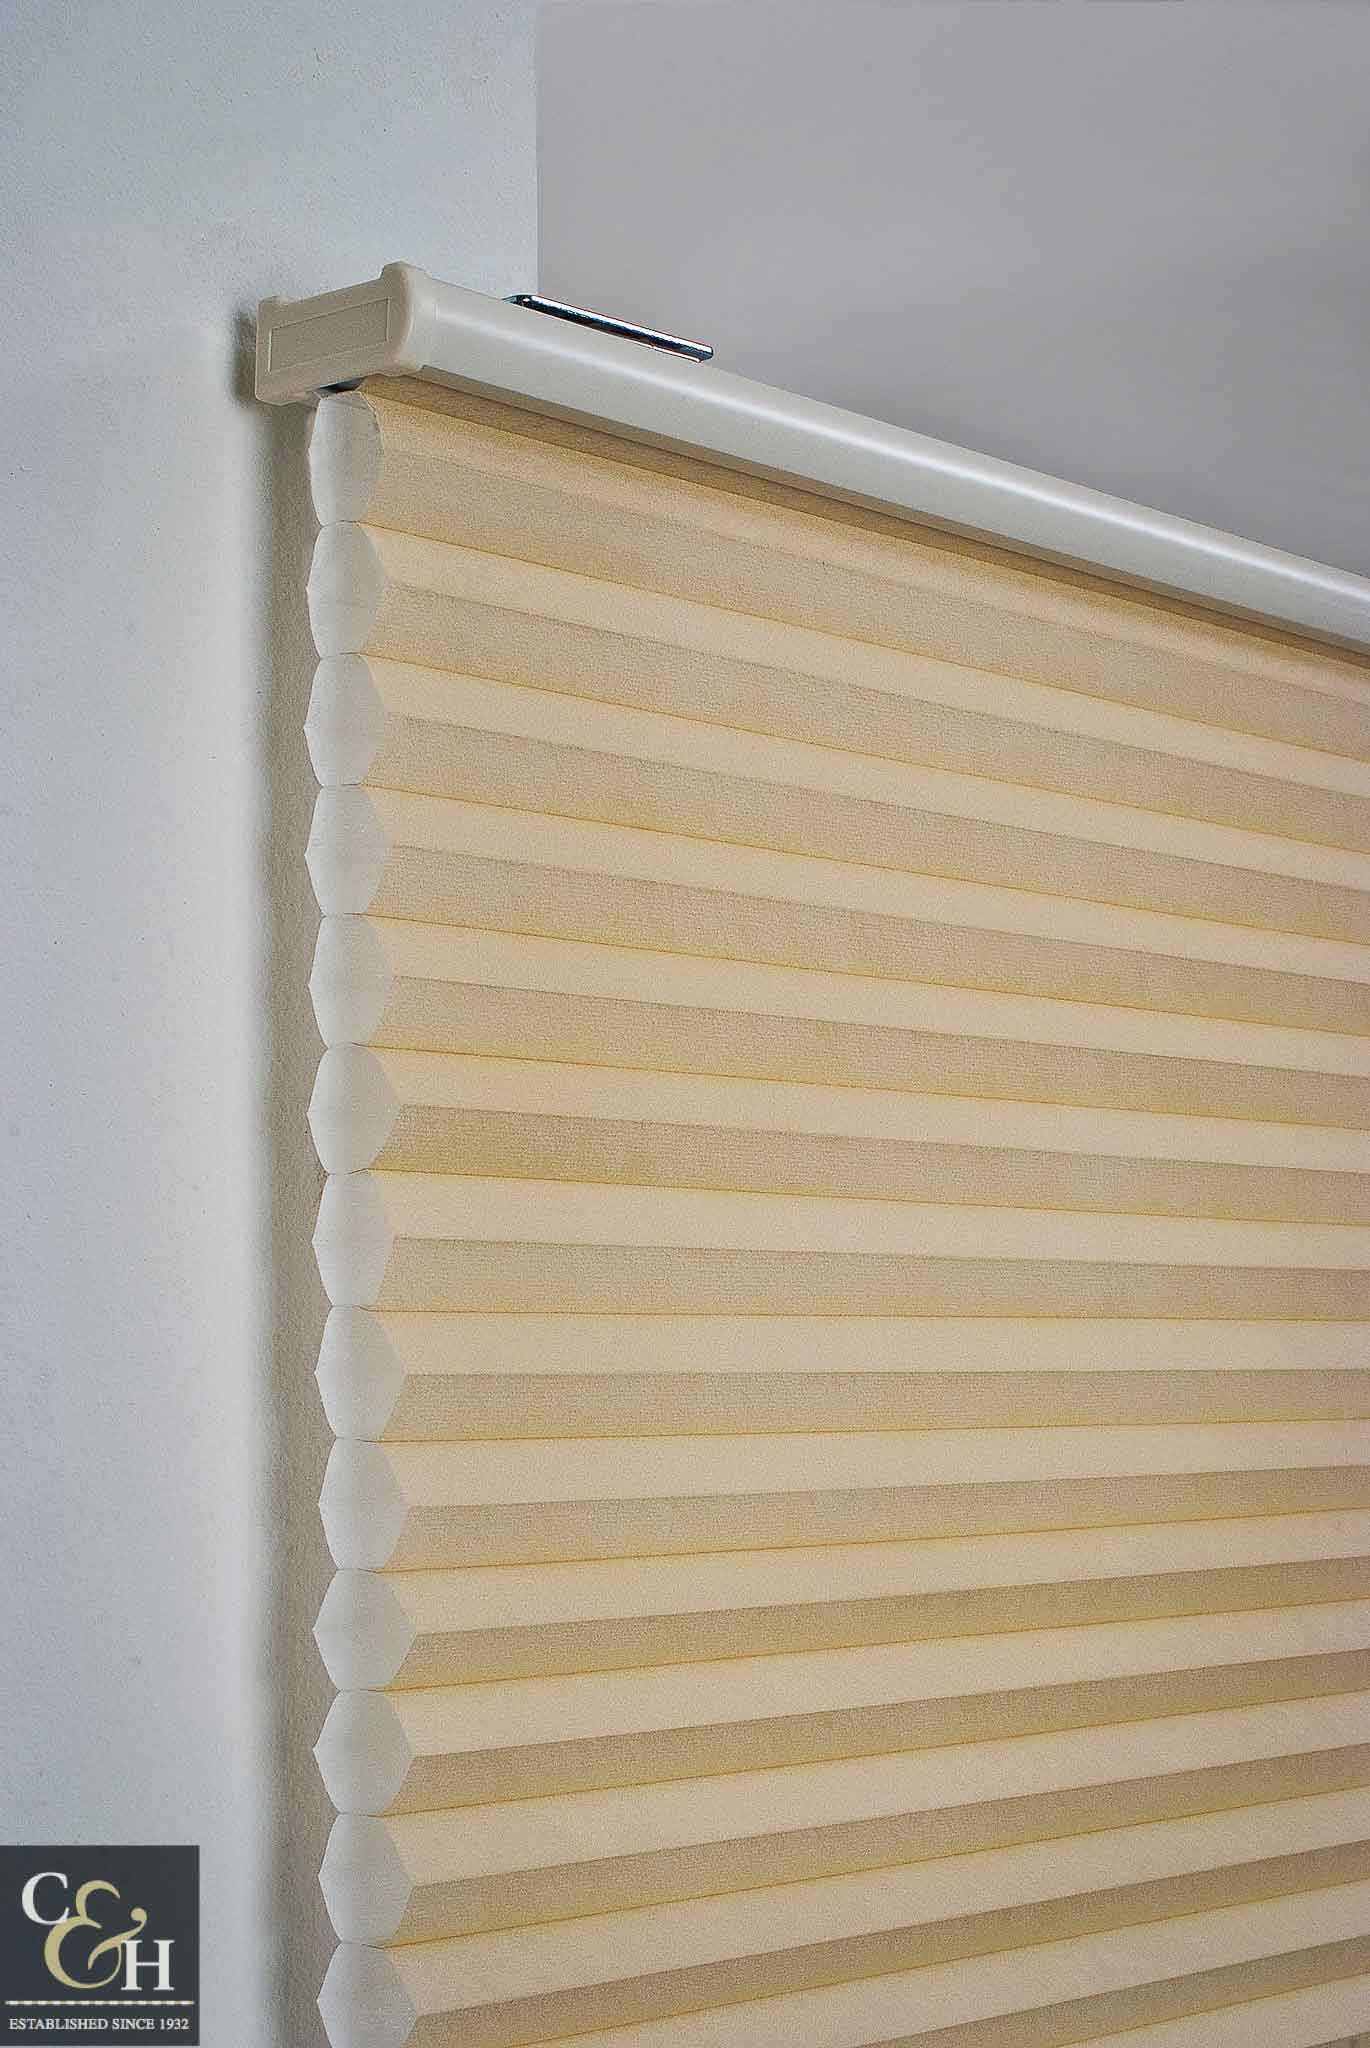 cellular honeycomb blinds 13 in a building